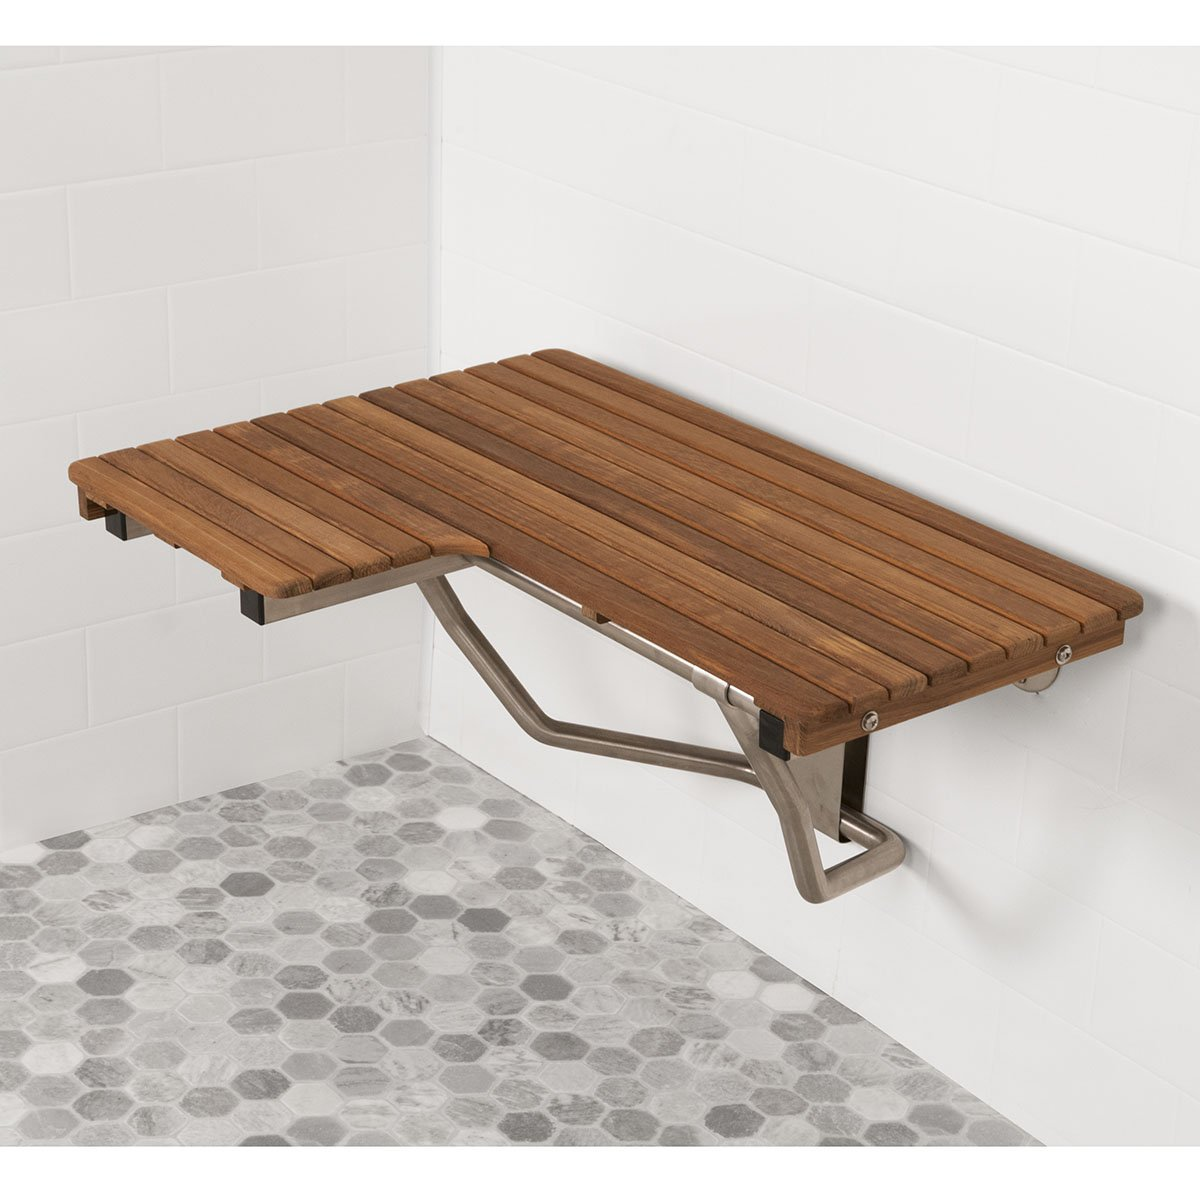 Plantation Teak ADA Wall Mounted Right Handed Shower Bench/Seat (32''x22.5'')